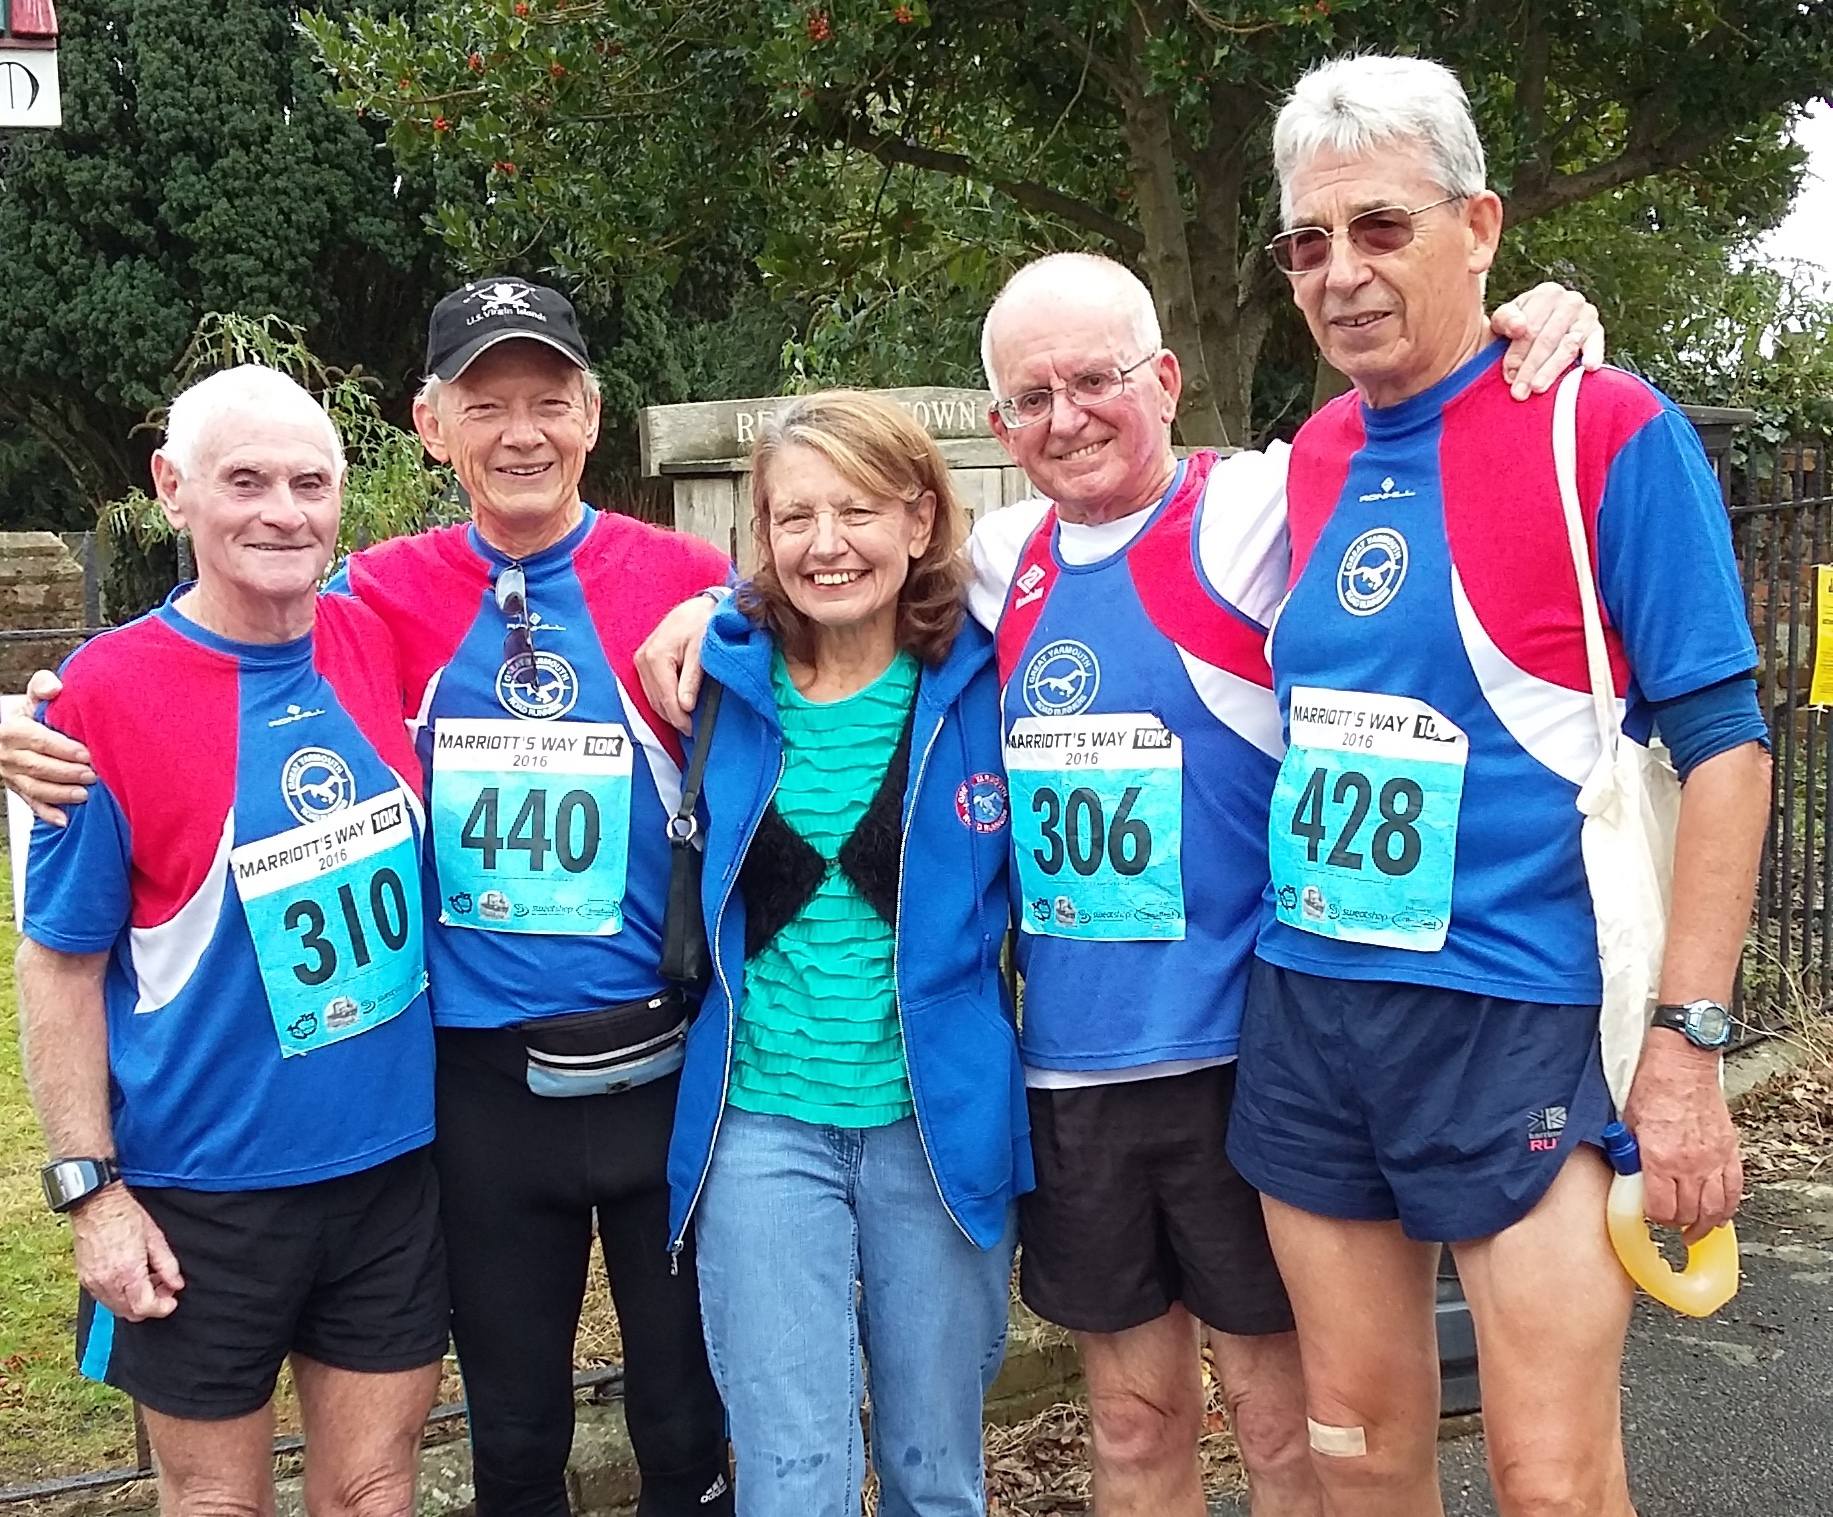 Picture Left to right: Bob Arnell, Chuck Weigand, Carole Spong, Roger Andrews, Jim Spong.